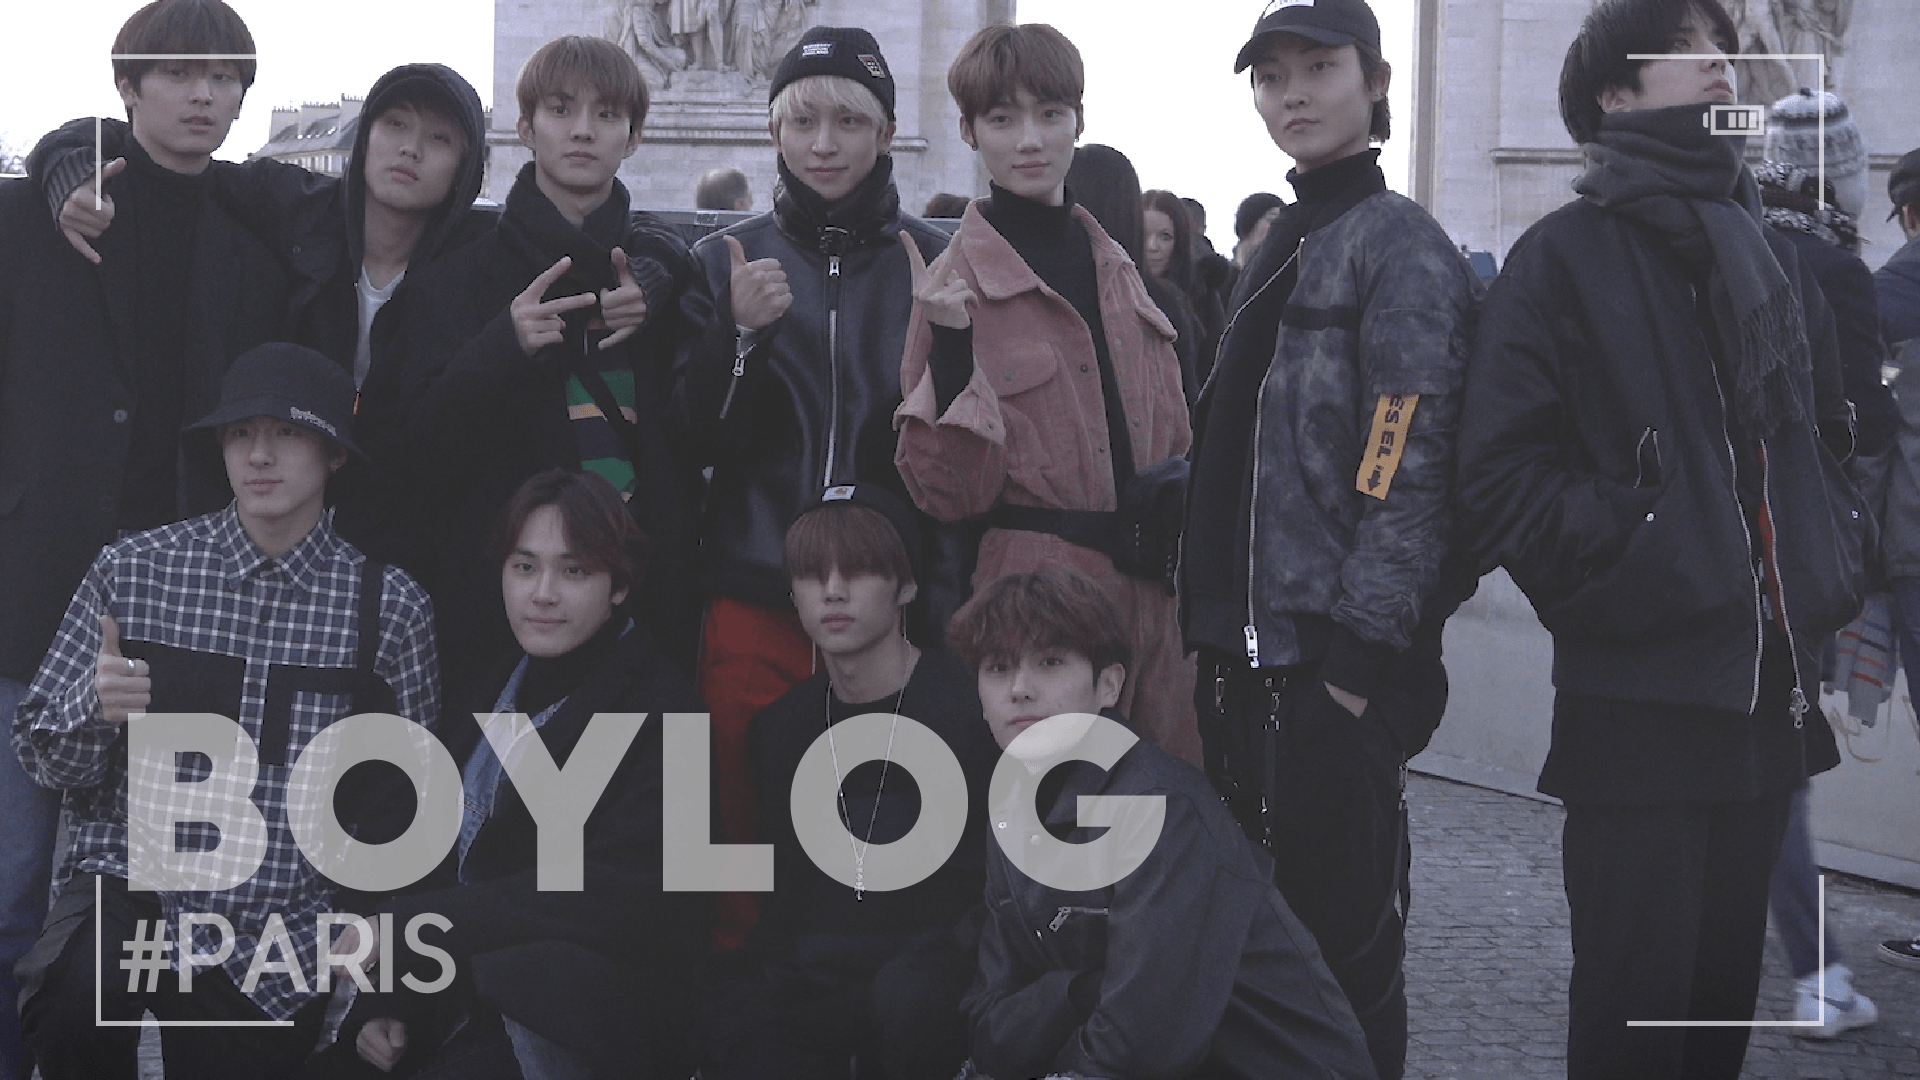 [BOYLOG] BOYLOG IN PARIS